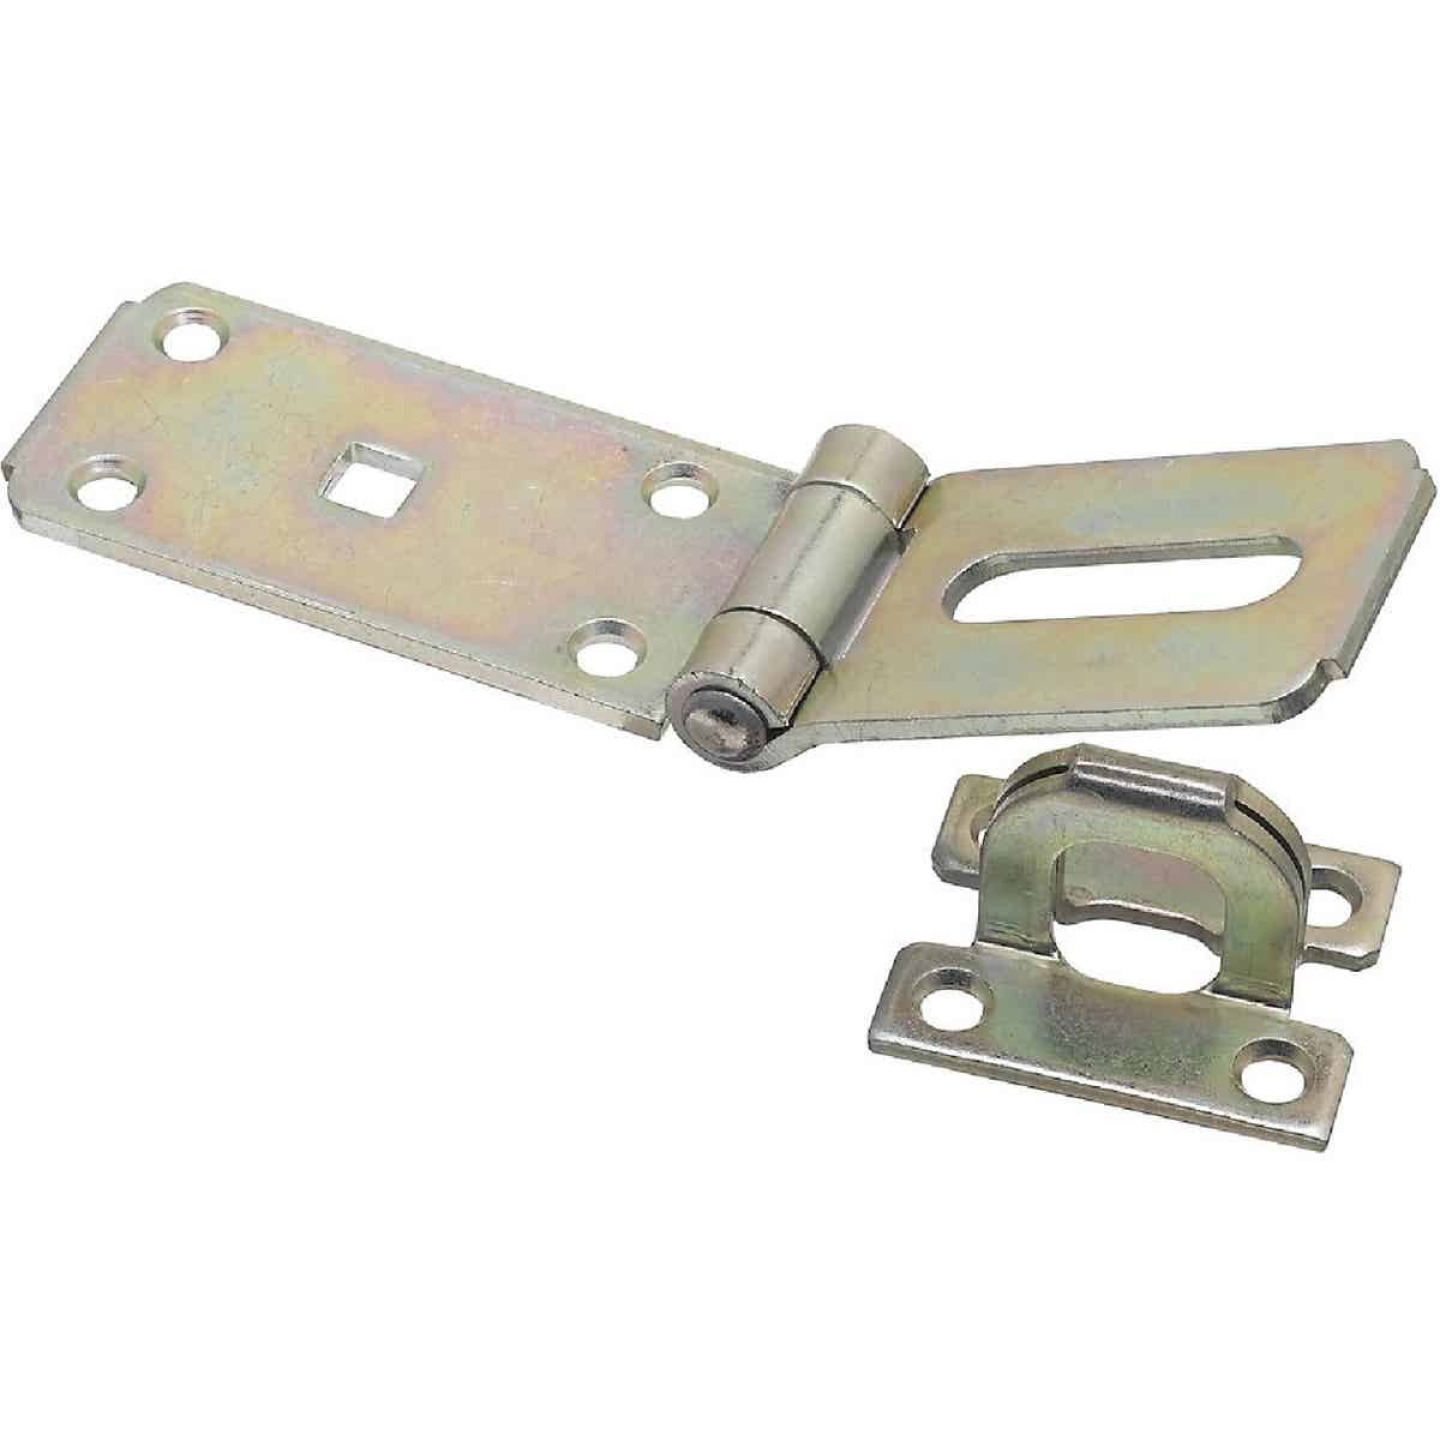 National 1-7/8 In. x 7-1/4 In. Zinc Hasp Image 1